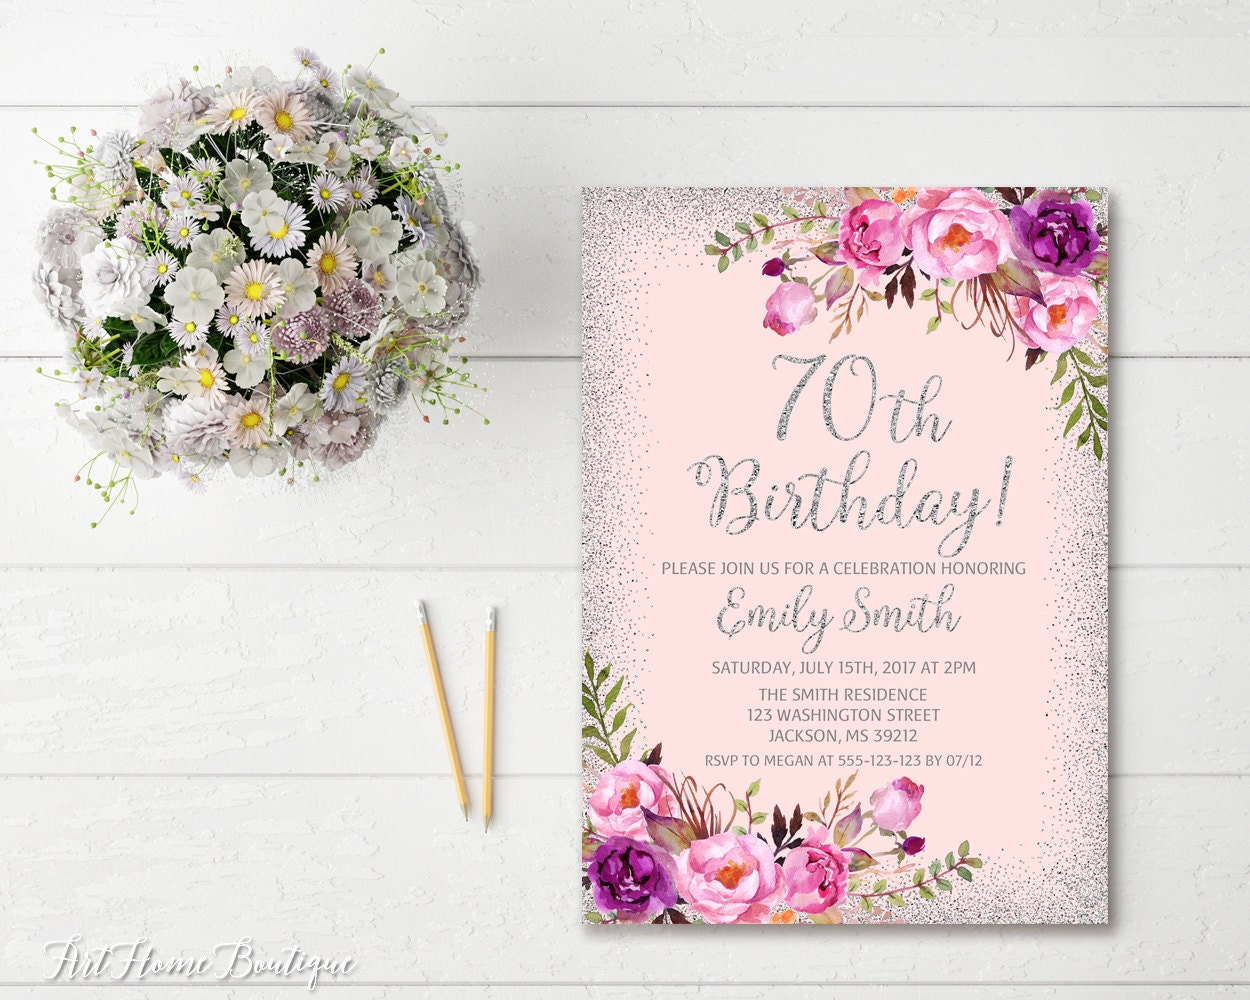 70th birthday invitation any age women birthday invitation etsy 50 izmirmasajfo